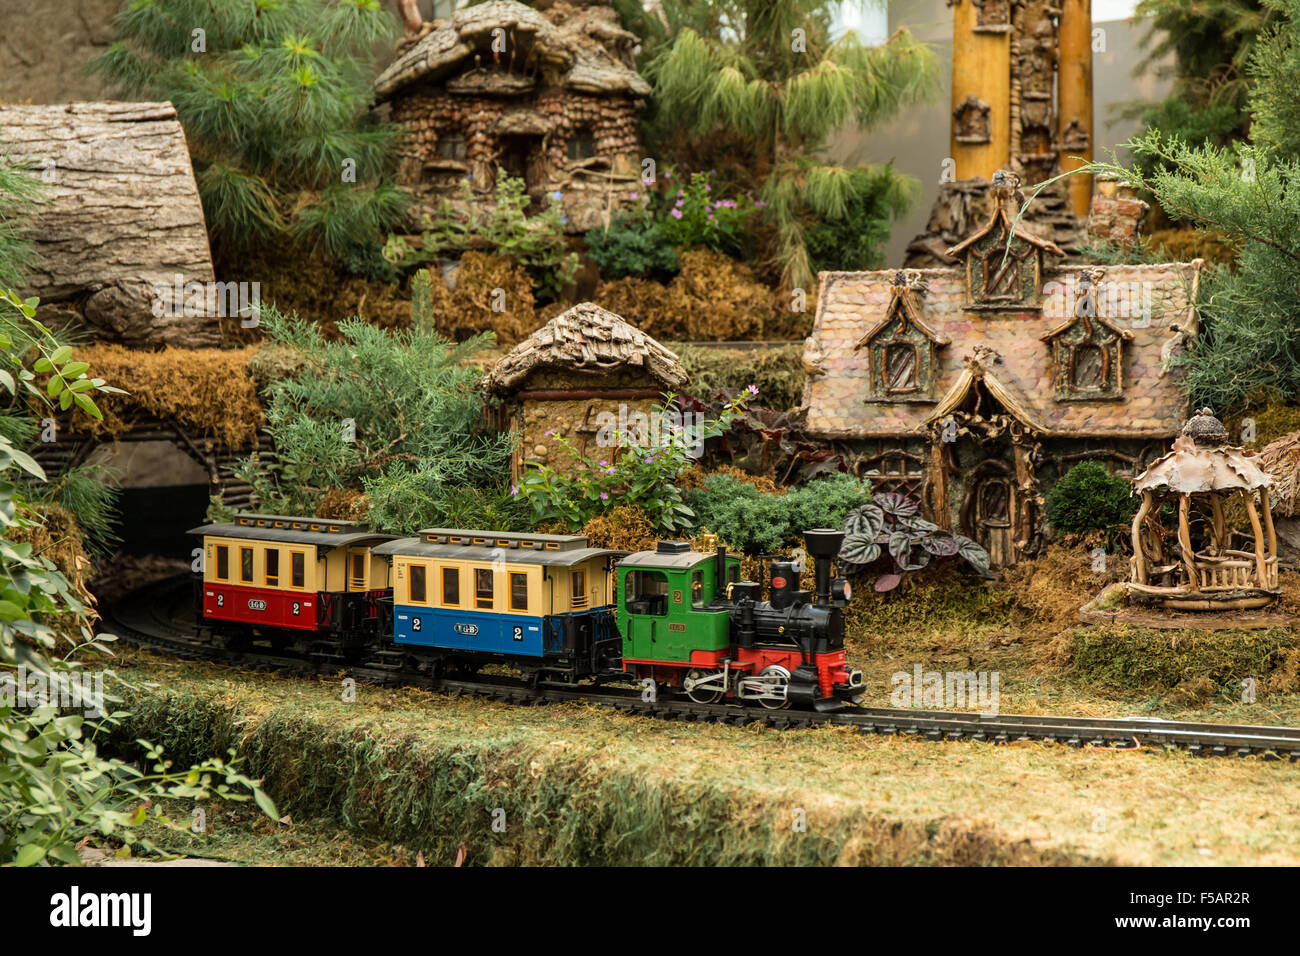 Garden Railroad In The Franklin Park Conservatory And Botanical Garden In  Columbus, Ohio